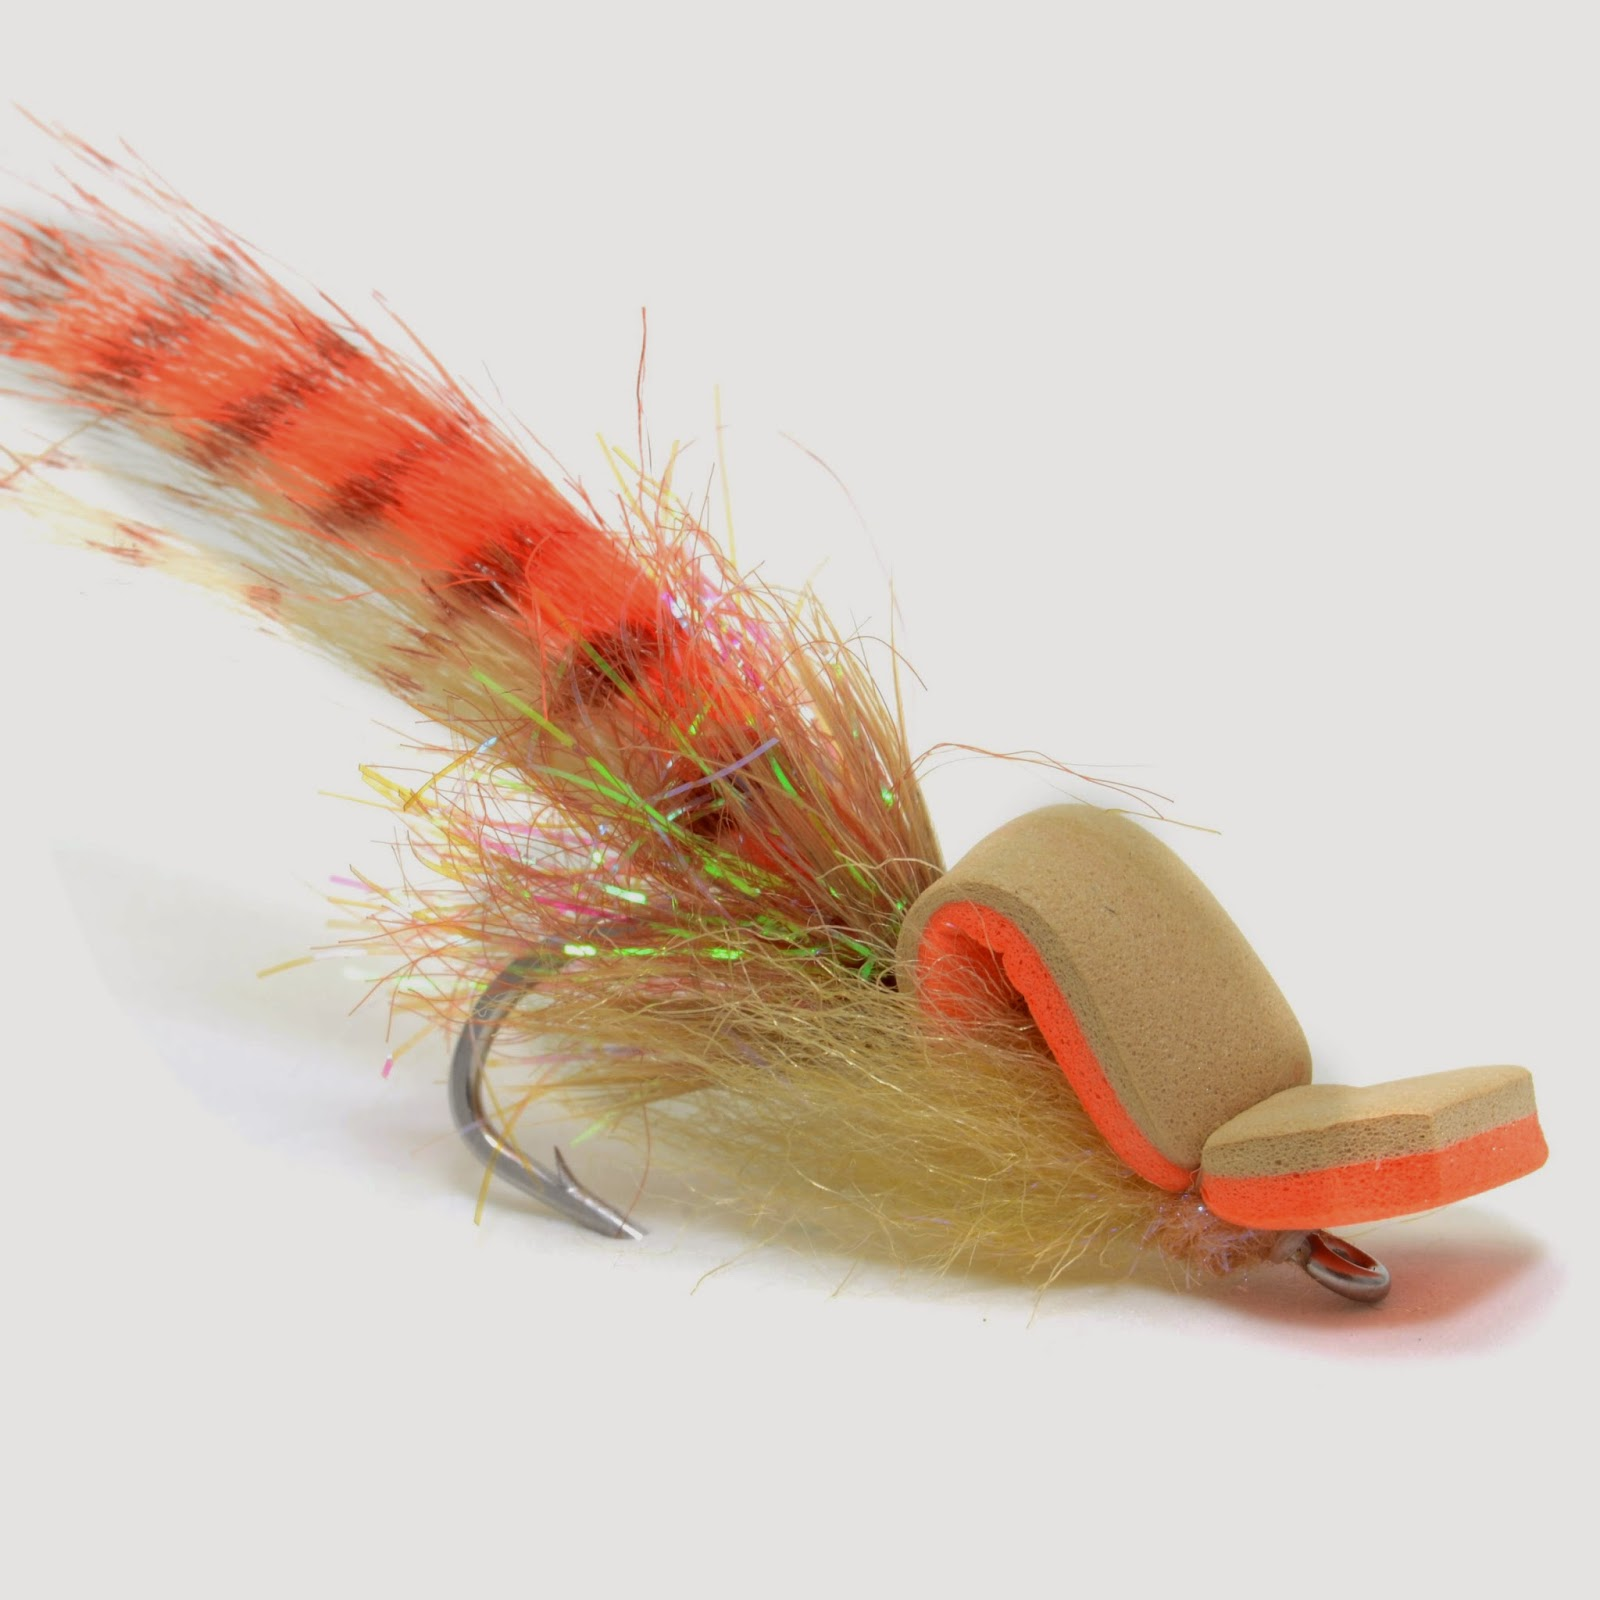 Saltwater gurgler fly fish food fly tying and fly fishing for Salt water fly fishing